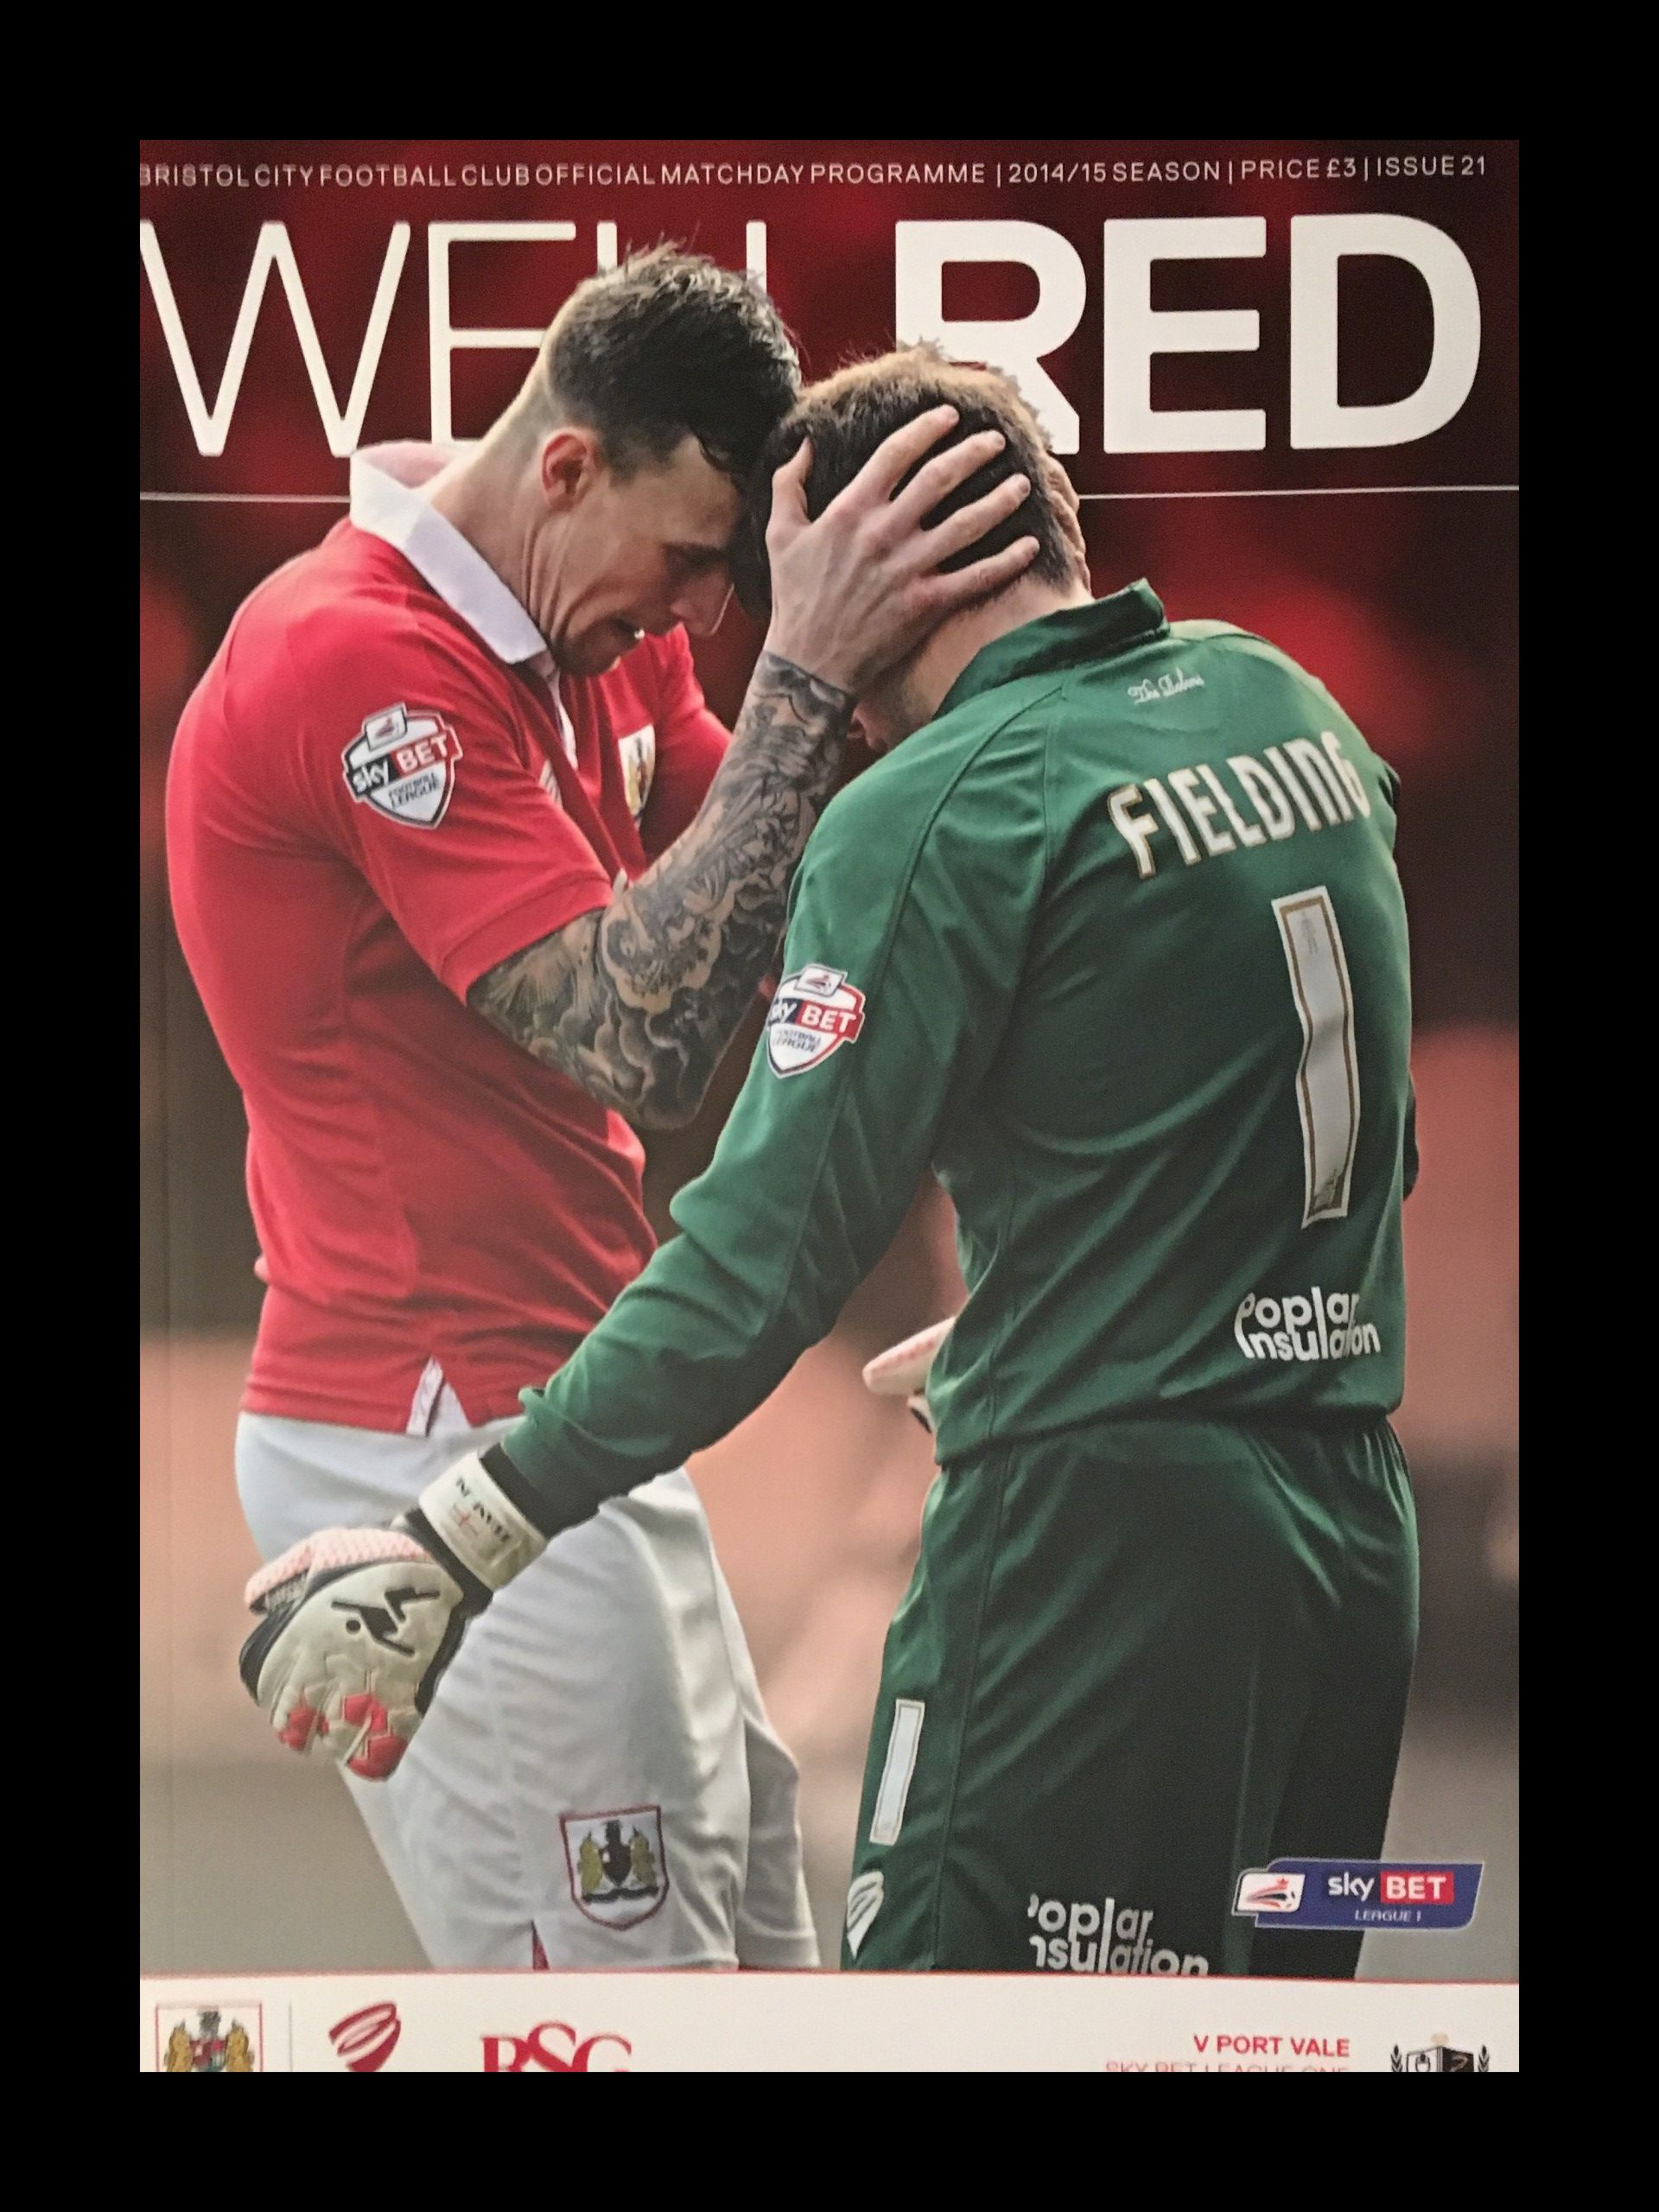 Bristol City v Port Vale 10-02-2015 Programme